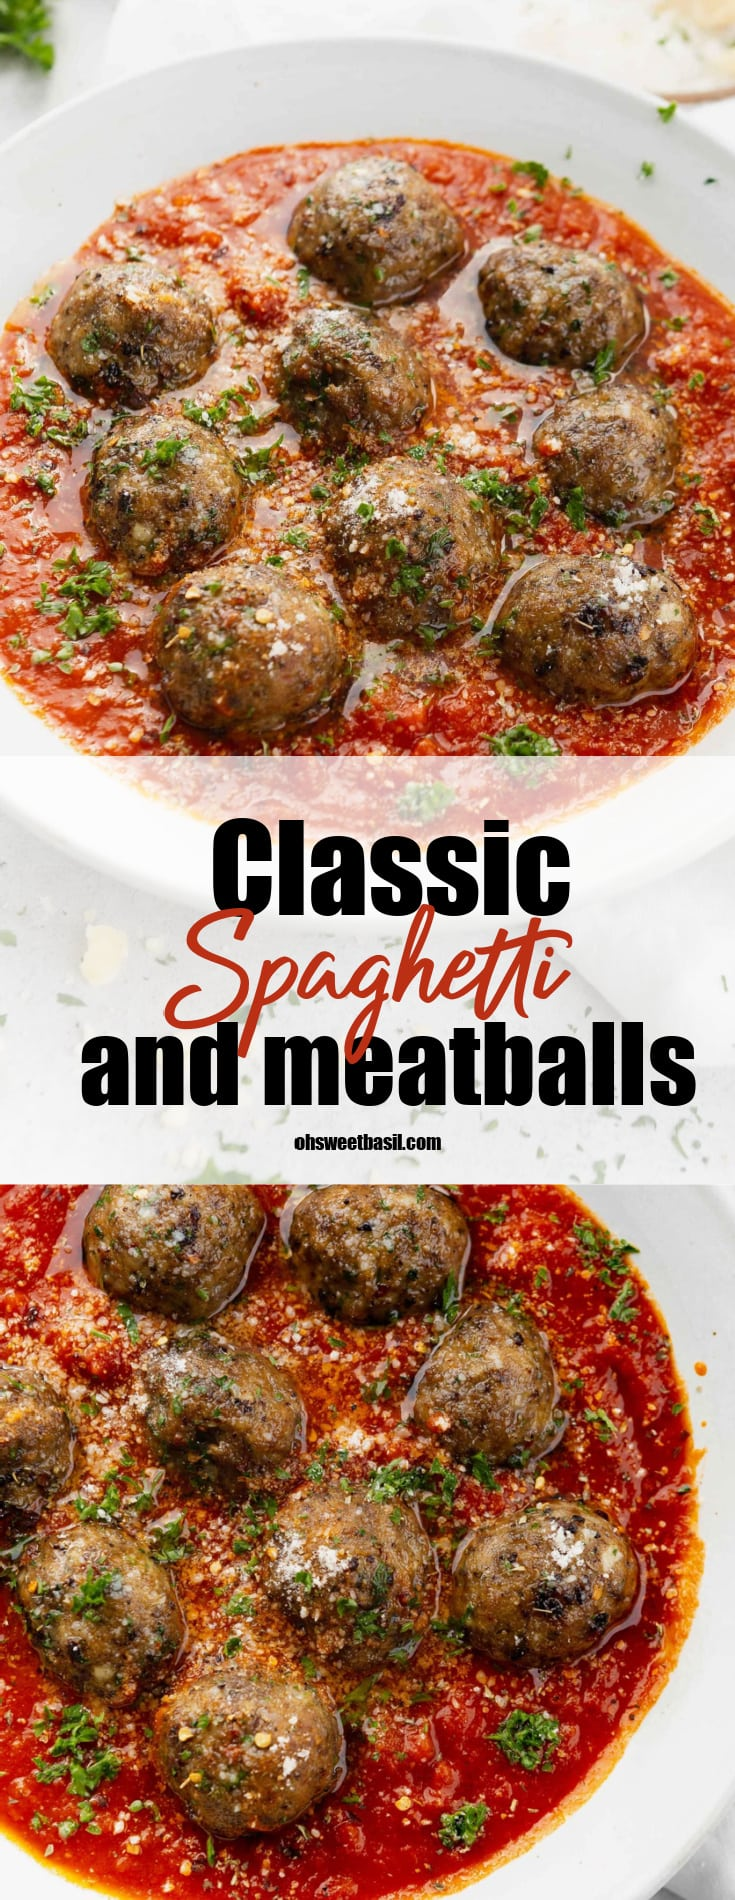 A bowl of meatballs in a tomato based sauce. The dish is sprinkled with chopped parsley.